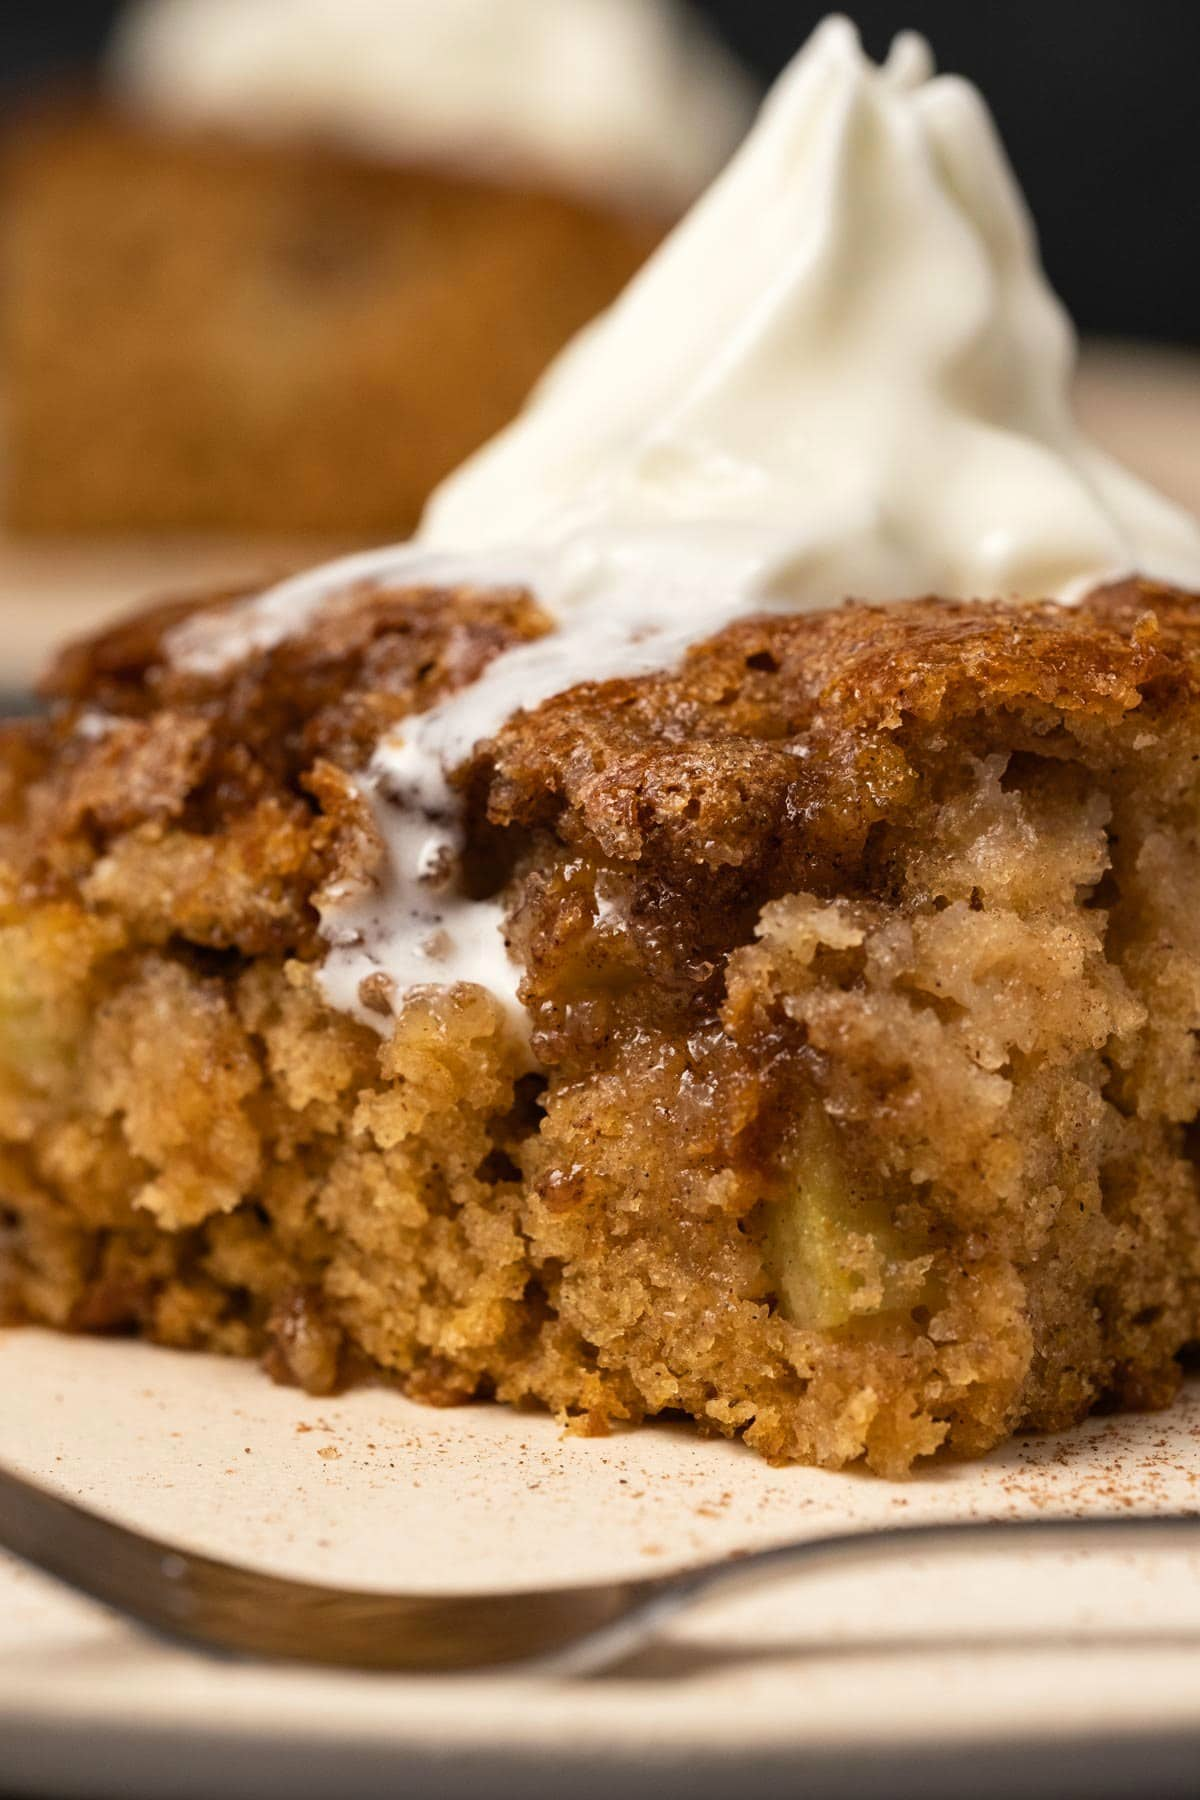 Apple cake slice topped with melting whipped cream.